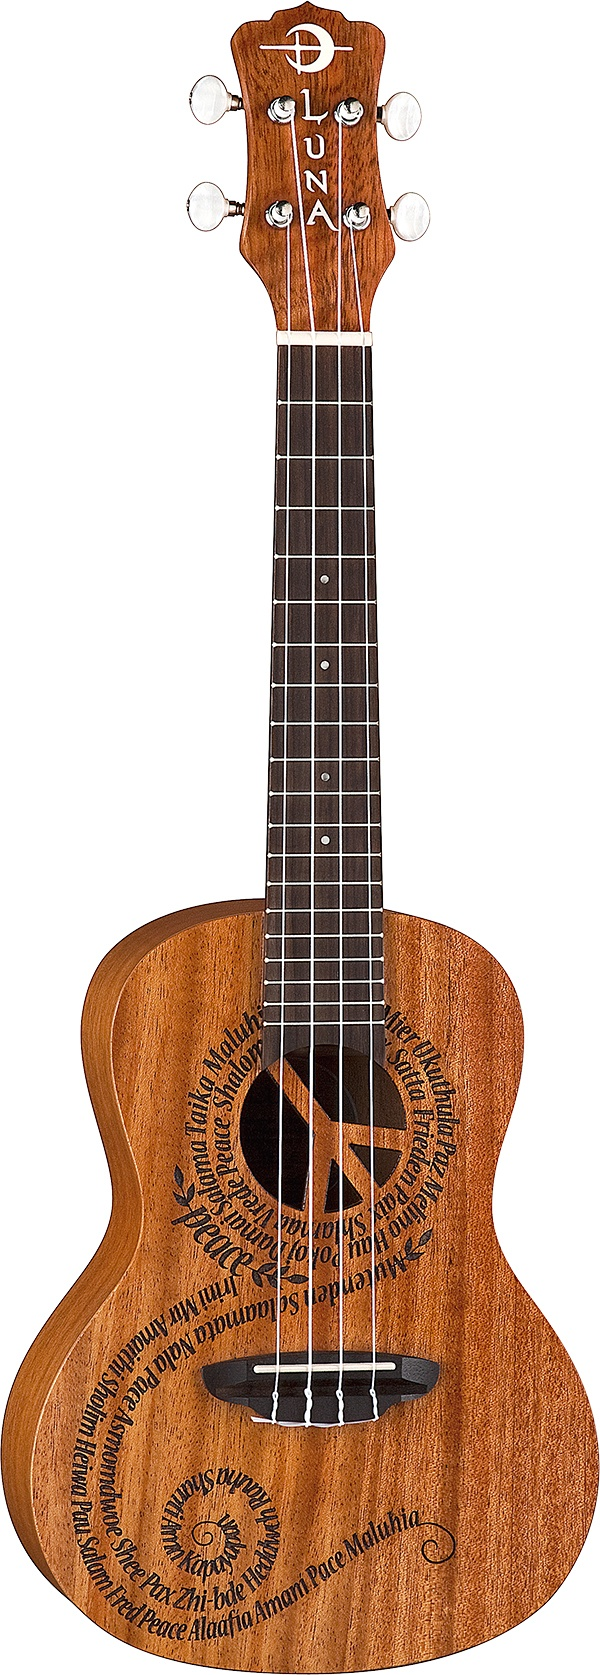 "Peace Uke - laser etched words for ""Peace"" in 21 different languages Laser etched  21"" Concert Top: Select Mahogany Back/Sides: Mahogany Neck: Nato/ Mahogany Fretboard/Bridge: Rosewood Open Style Tuners Aquila Strings Preamp: none Scale:15"" Nut: 1 5⁄16"" Finish: Satin 24"" x 8 1⁄8"" x 2 3⁄4"" Gig bag included"